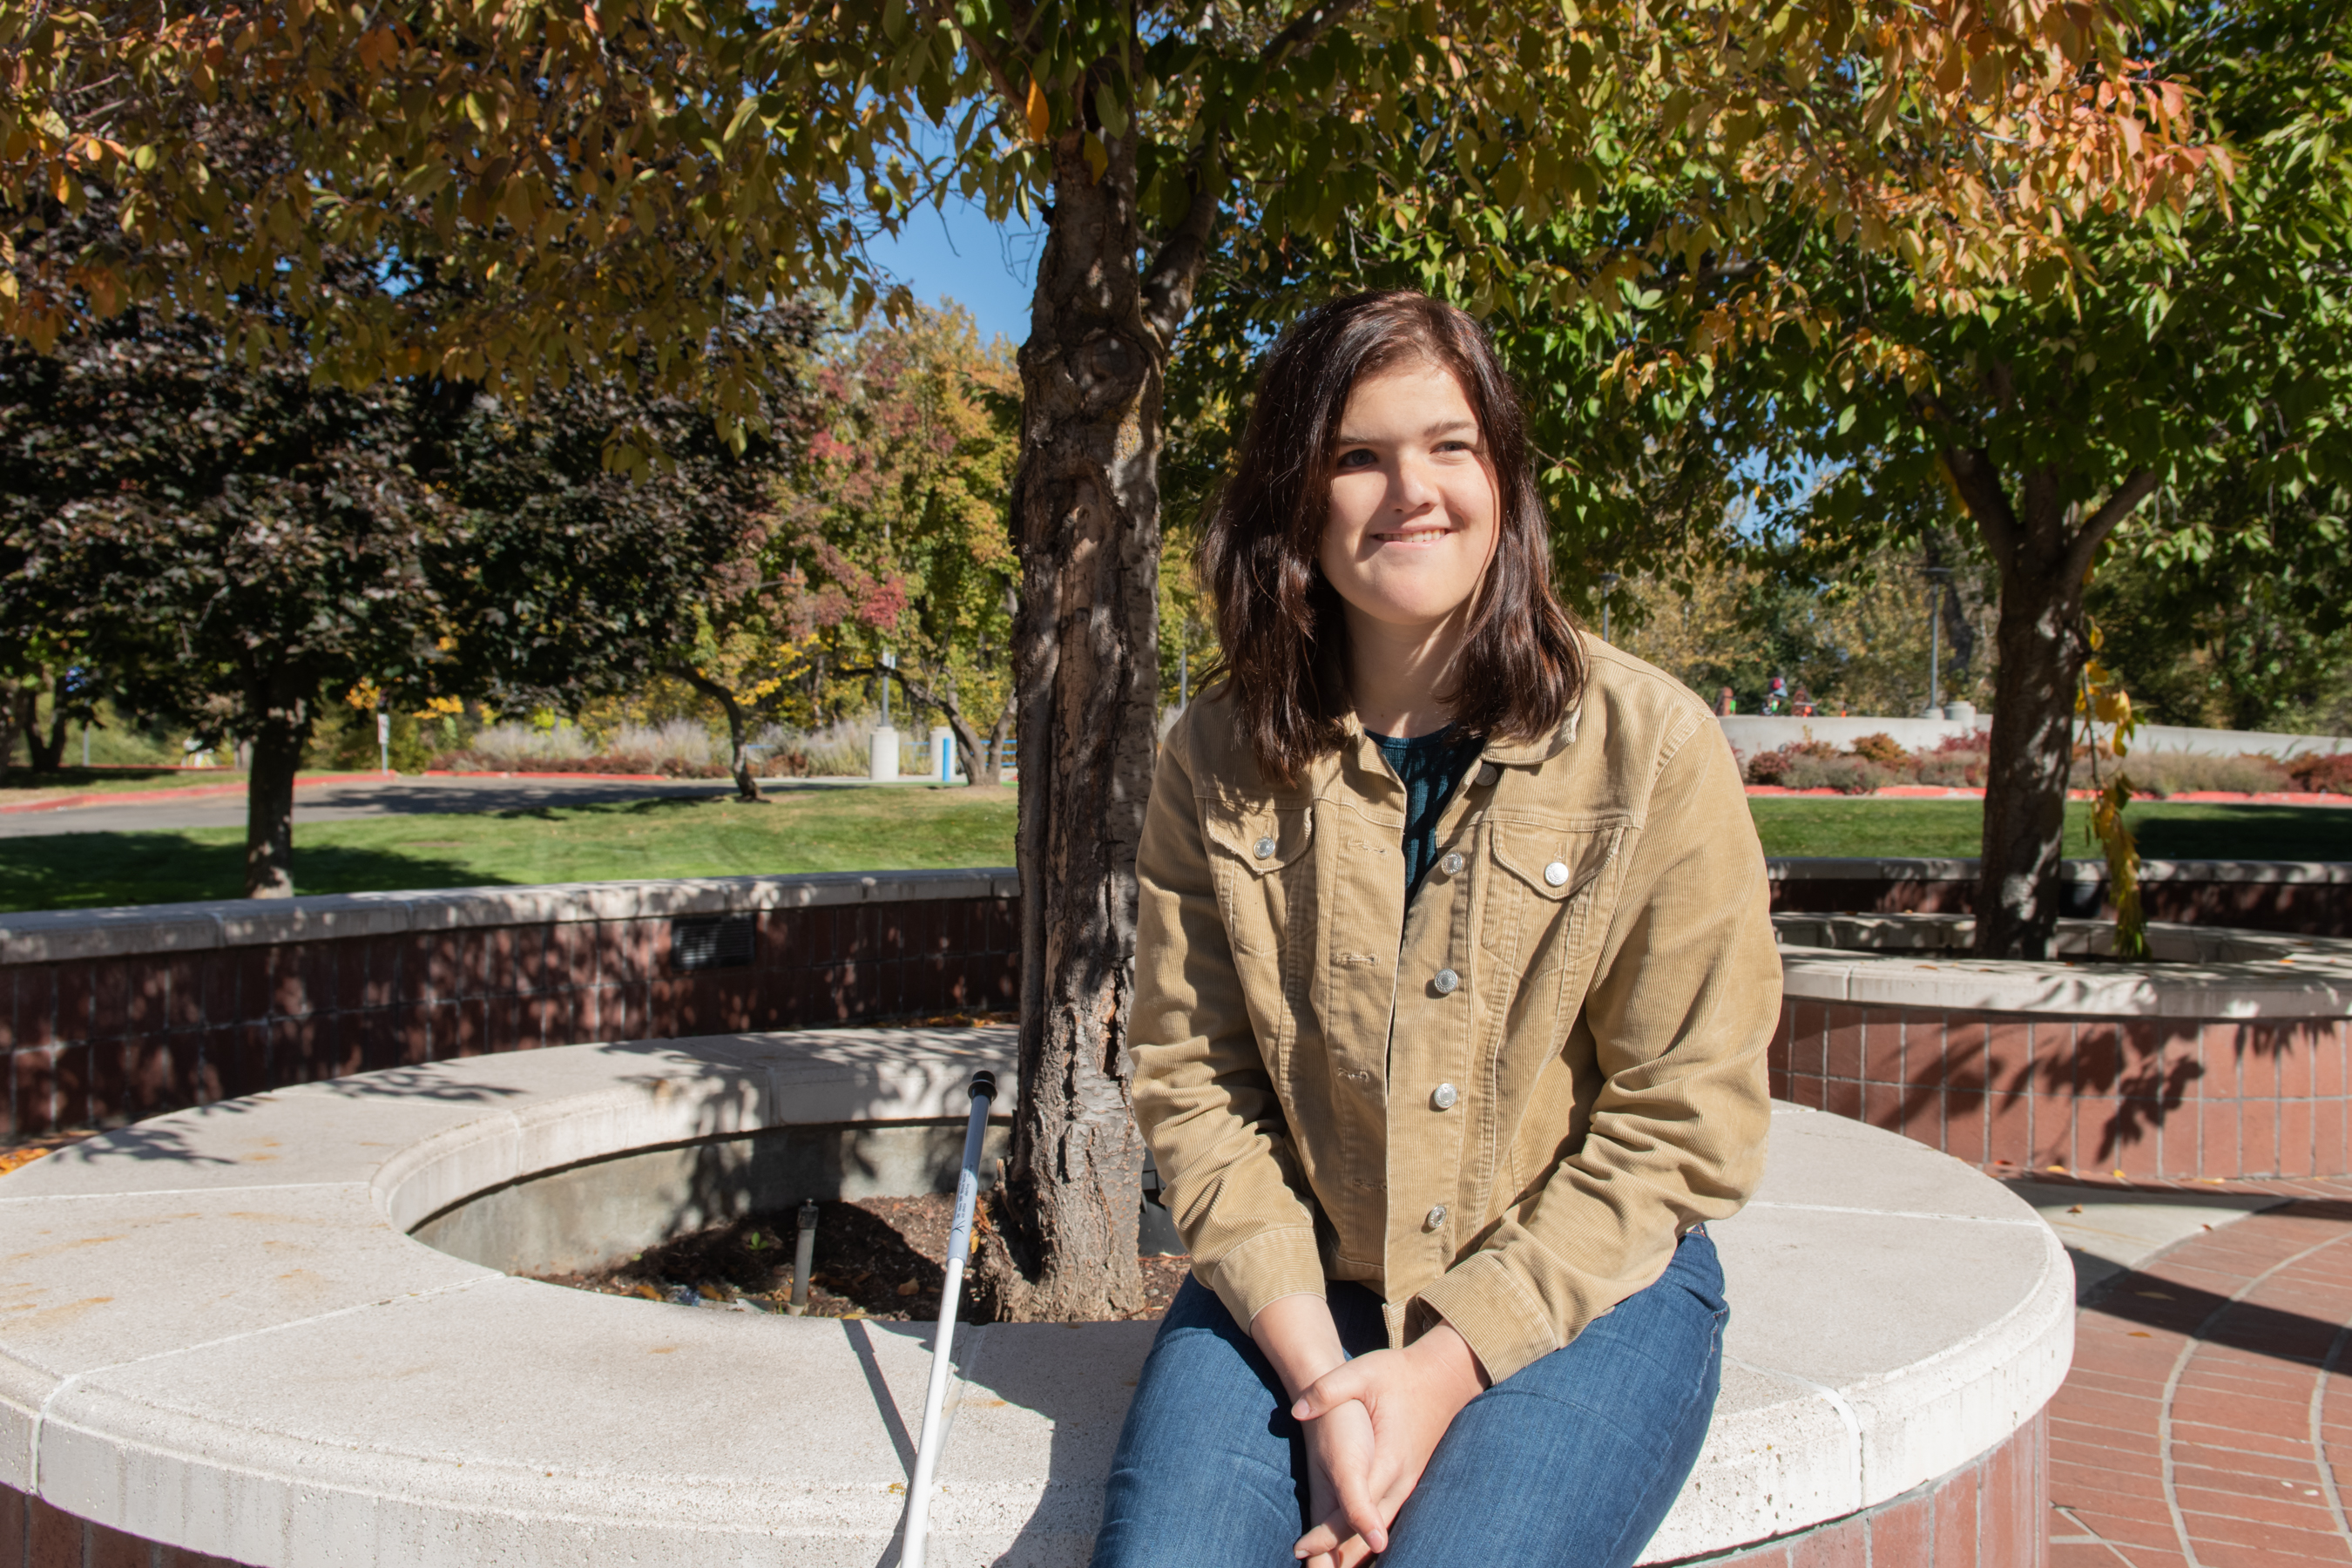 How one math and engineering major navigates Boise State - Boise State News